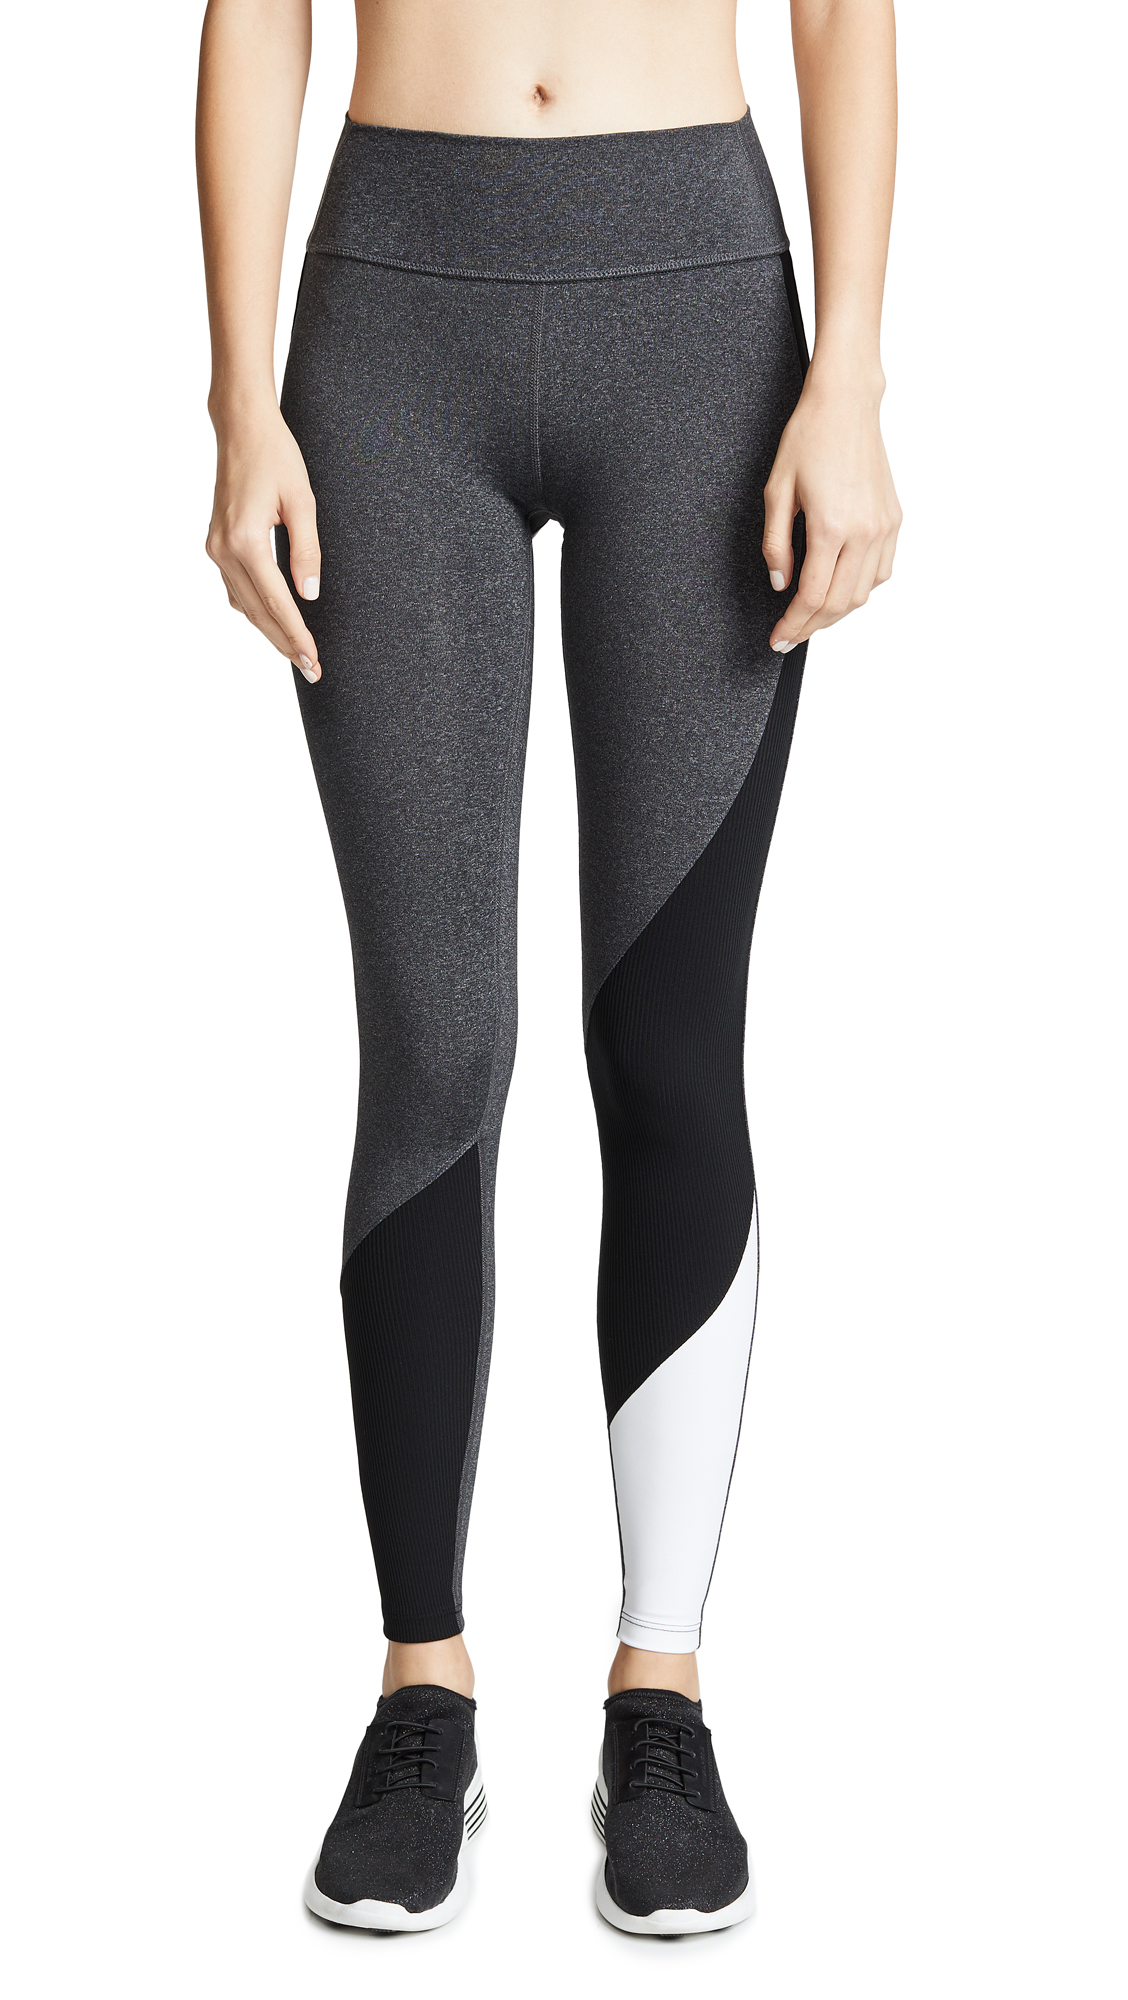 SPLITS59 All Star Tights in Heather Grey/Black/Off White